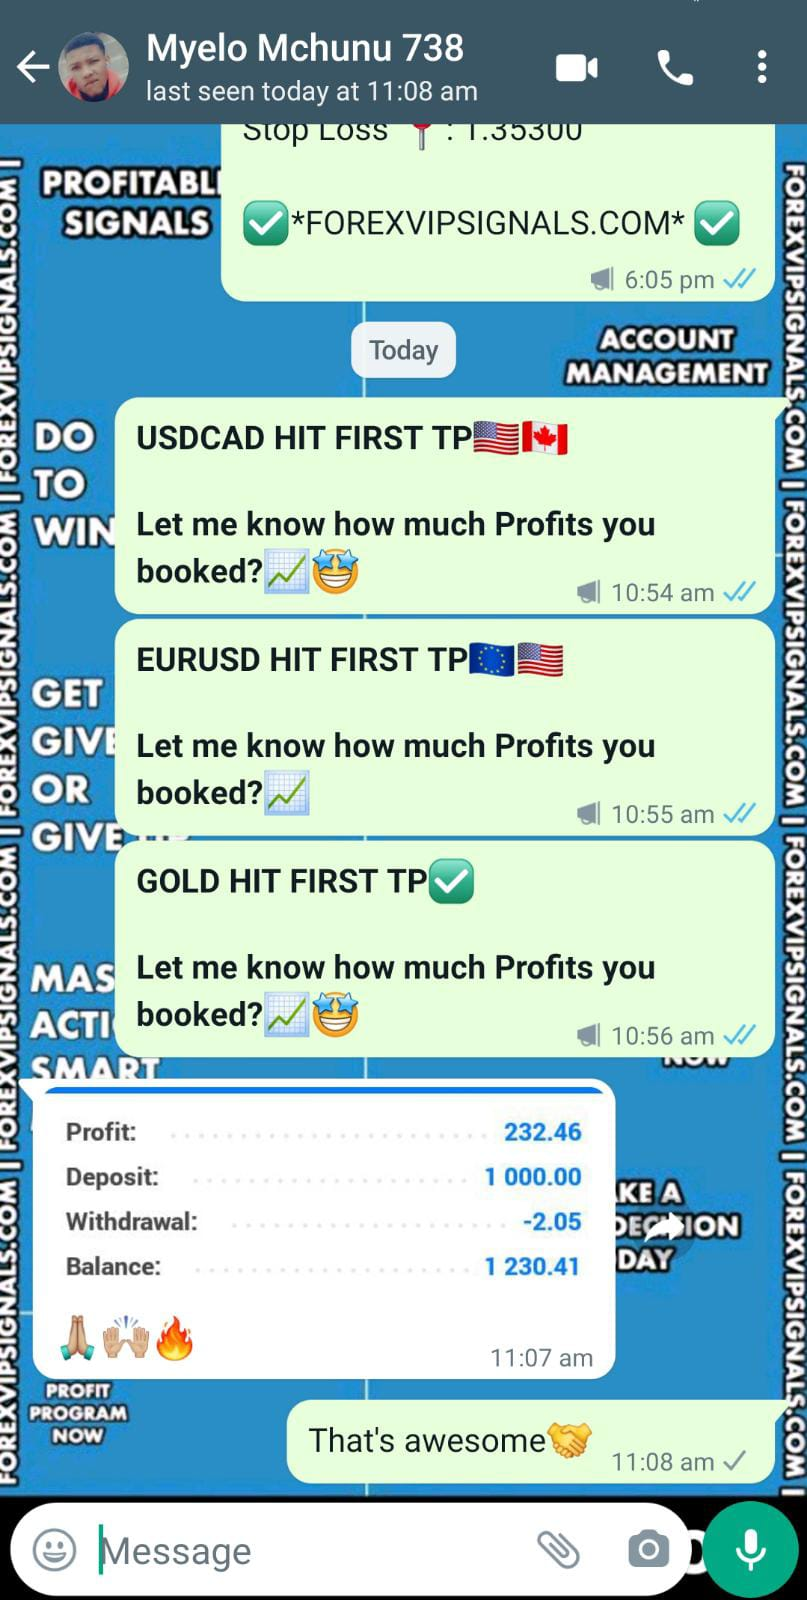 major currency pairs with forex vip signals